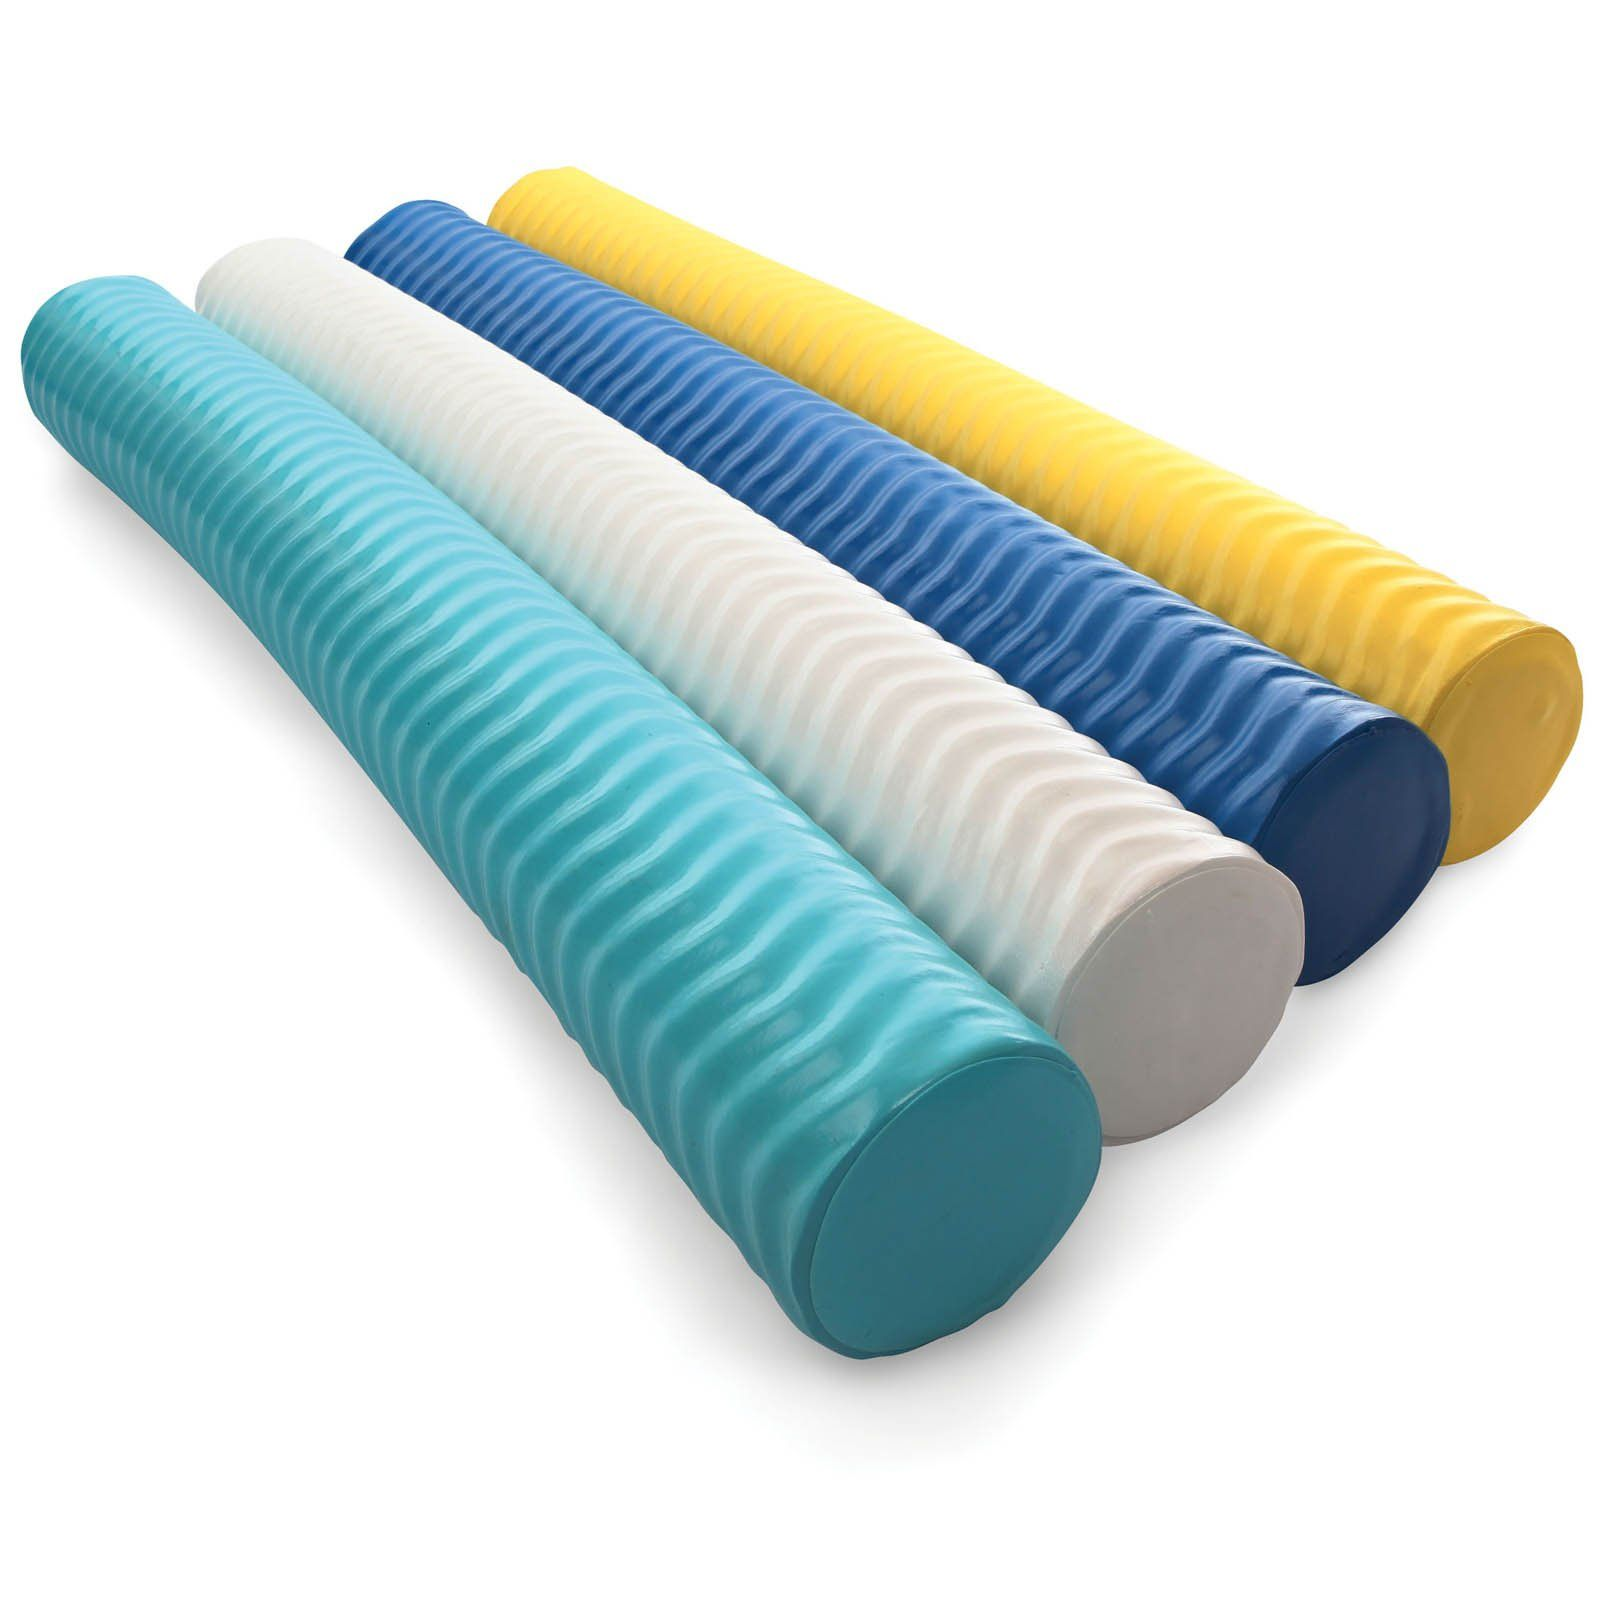 Doheny S Swimming Pool Noodles Vinyl Coated Great For Kids Adults And Pool Exercise Use 6 Diameter By 46 Swimming Pool Noodles Pool Noodles Swim Noodles